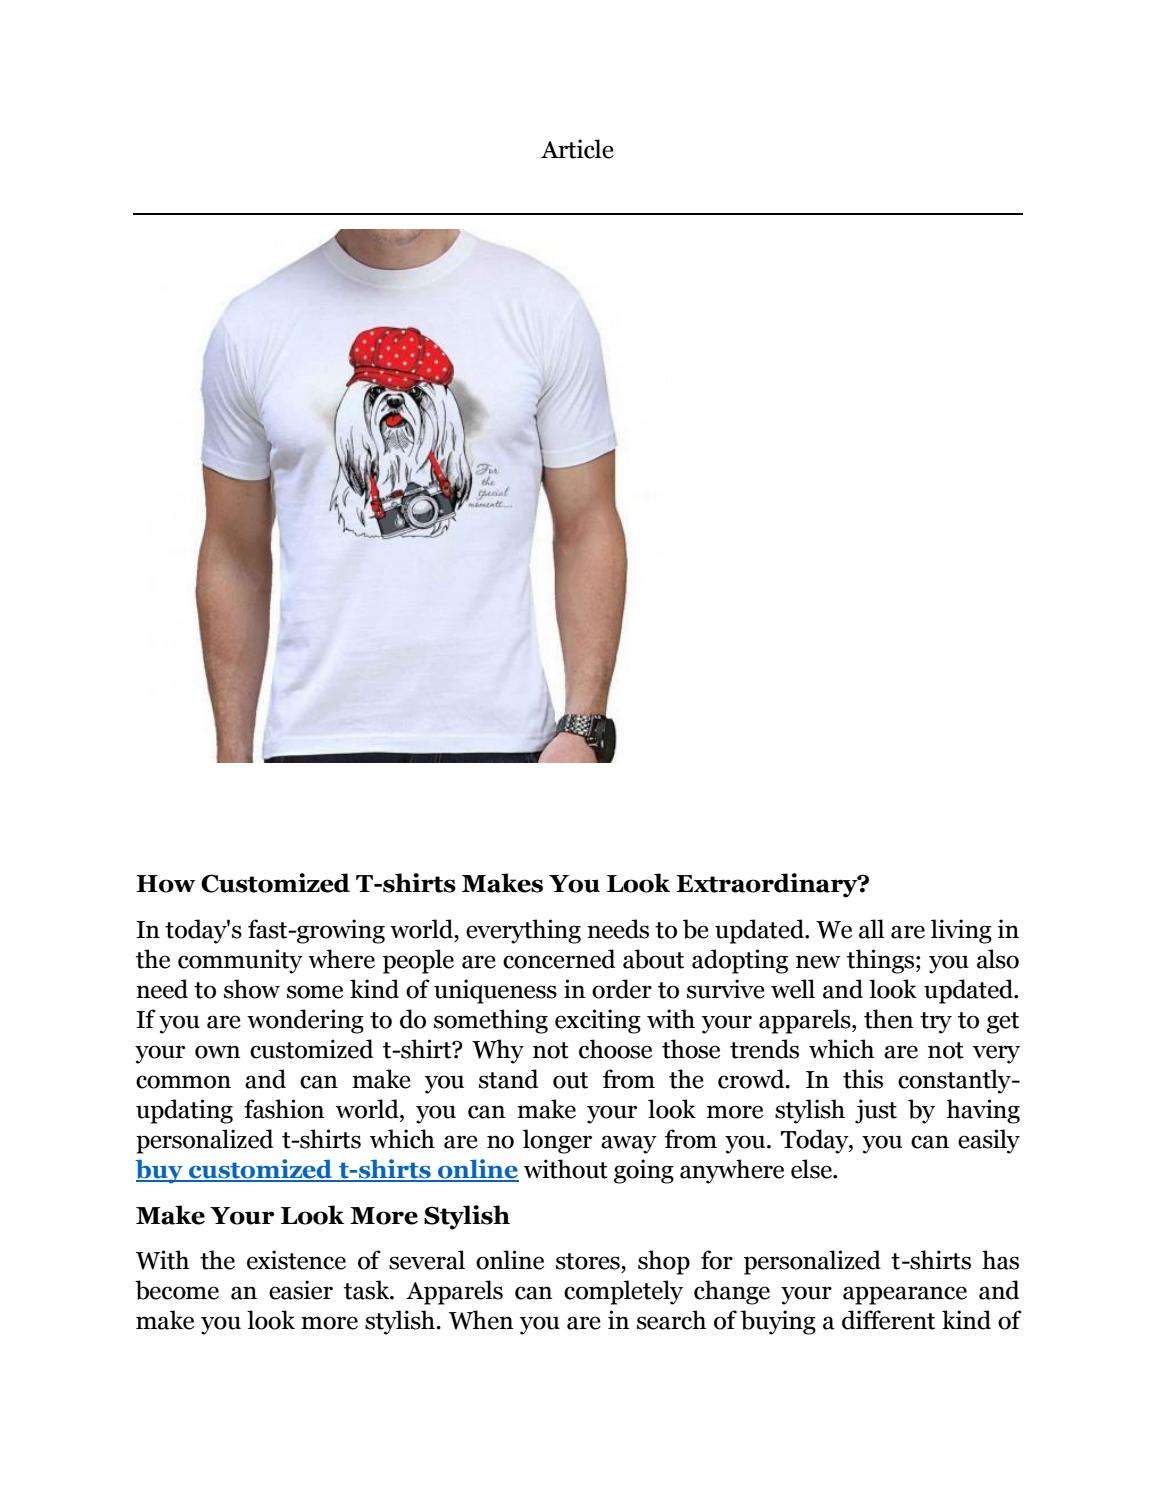 Design T Shirts Online Get Paid Chad Crowley Productions